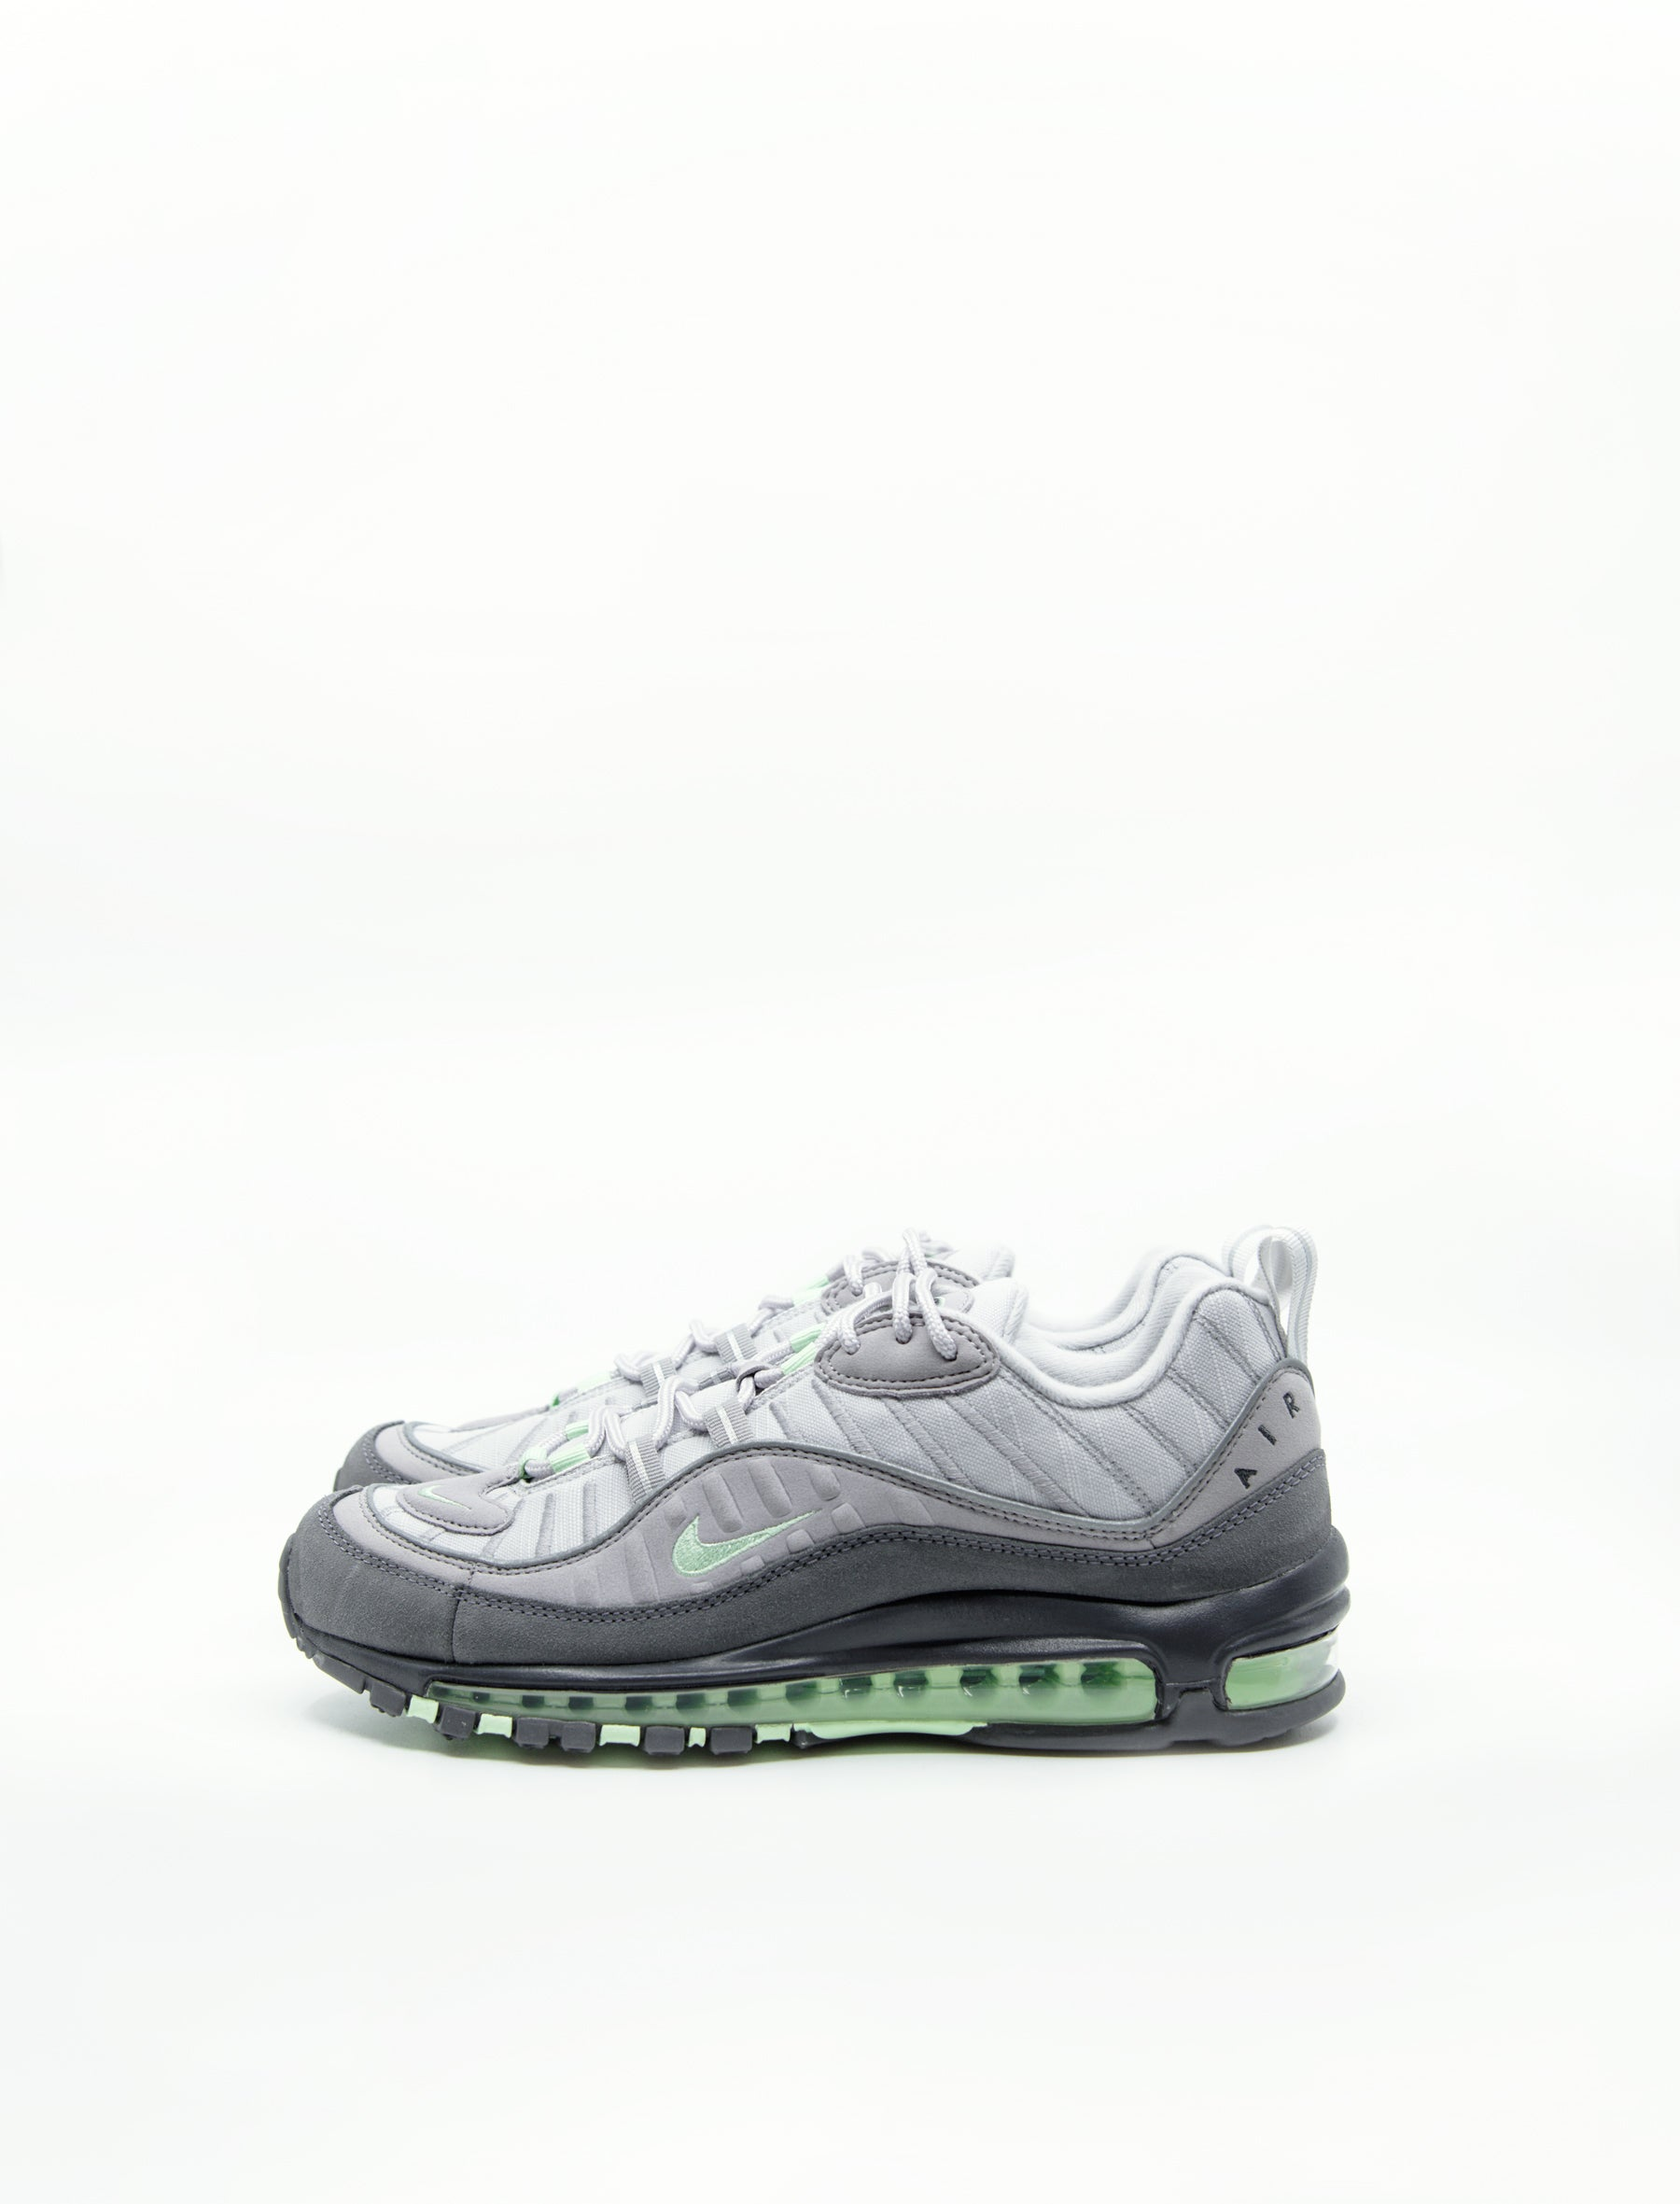 check out c6ca0 44748 Nike Air Max 98 Vast Grey Fresh Mint Atmosphere Grey 640744-011 - NOMAD